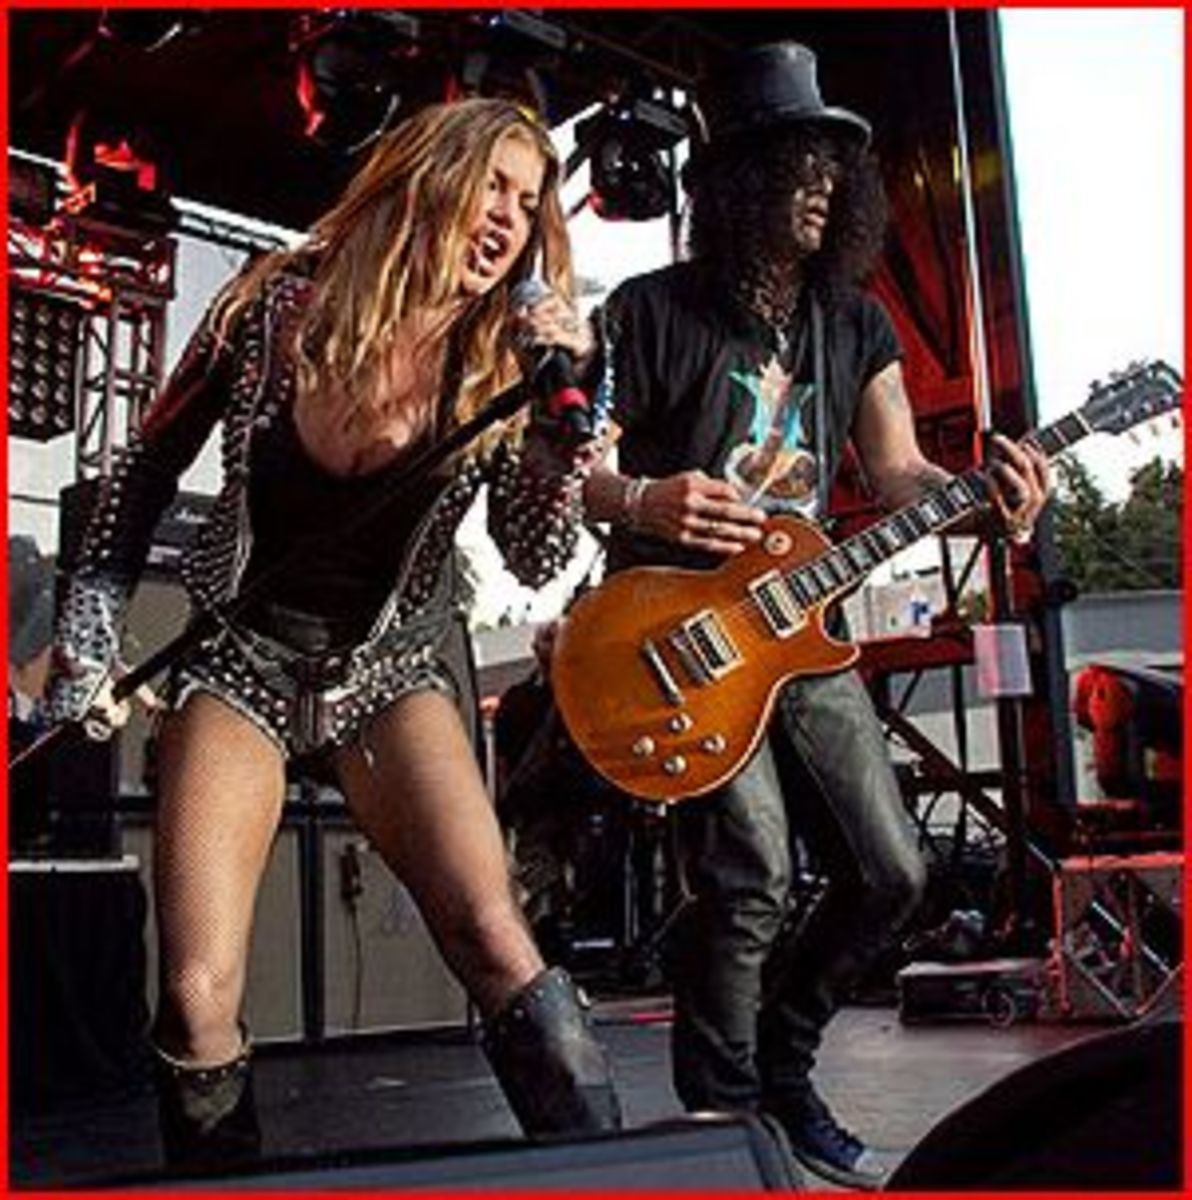 Slash, seen here with Fergie, has an image that hasn't changed since the 80's